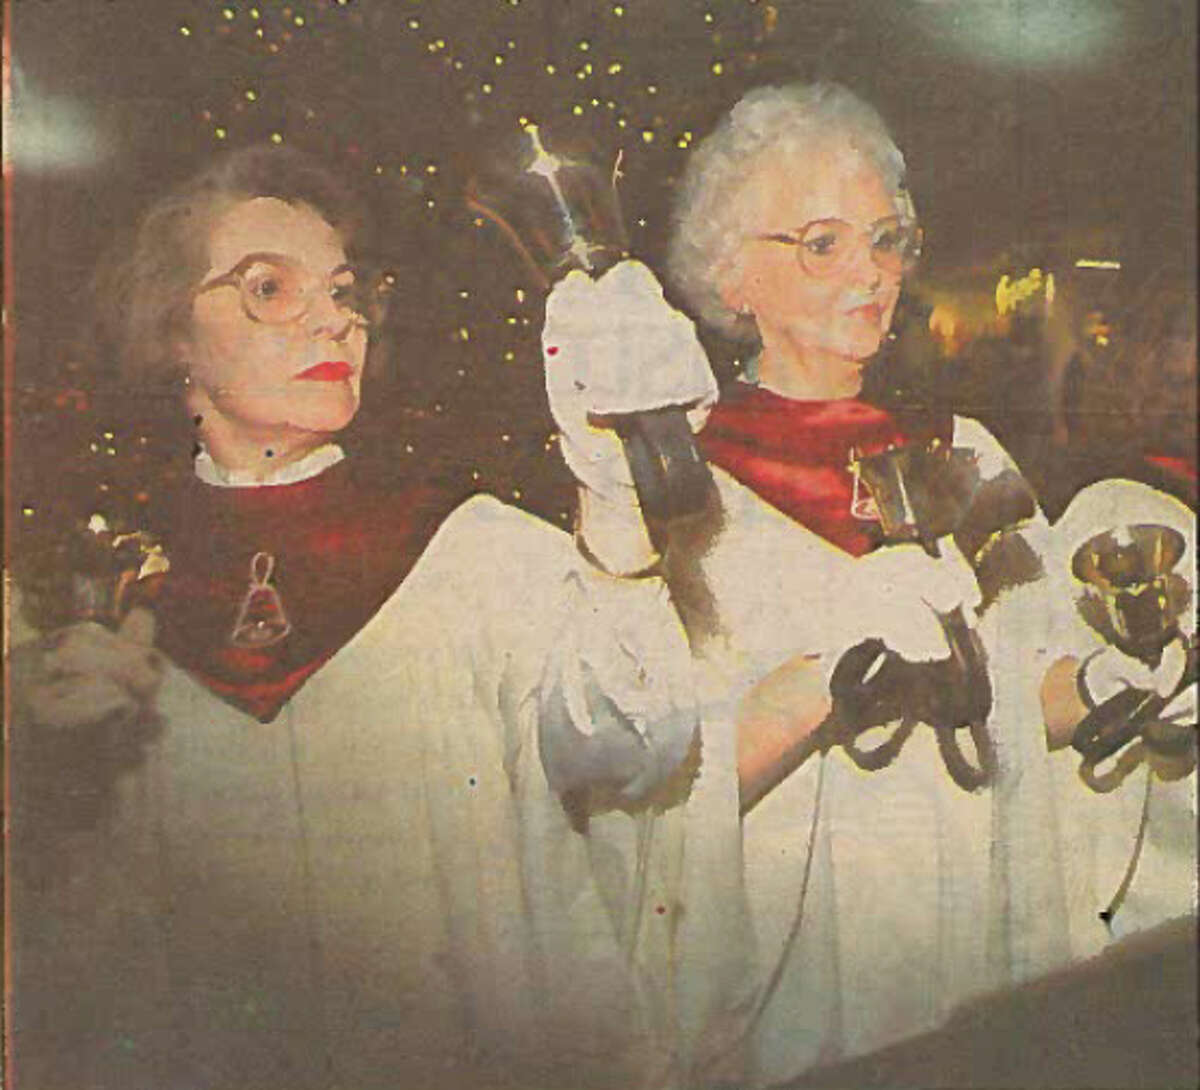 Calder Baptist Church bell ringers Vicki Price, left, and Cathy Arrington perform, 1989.